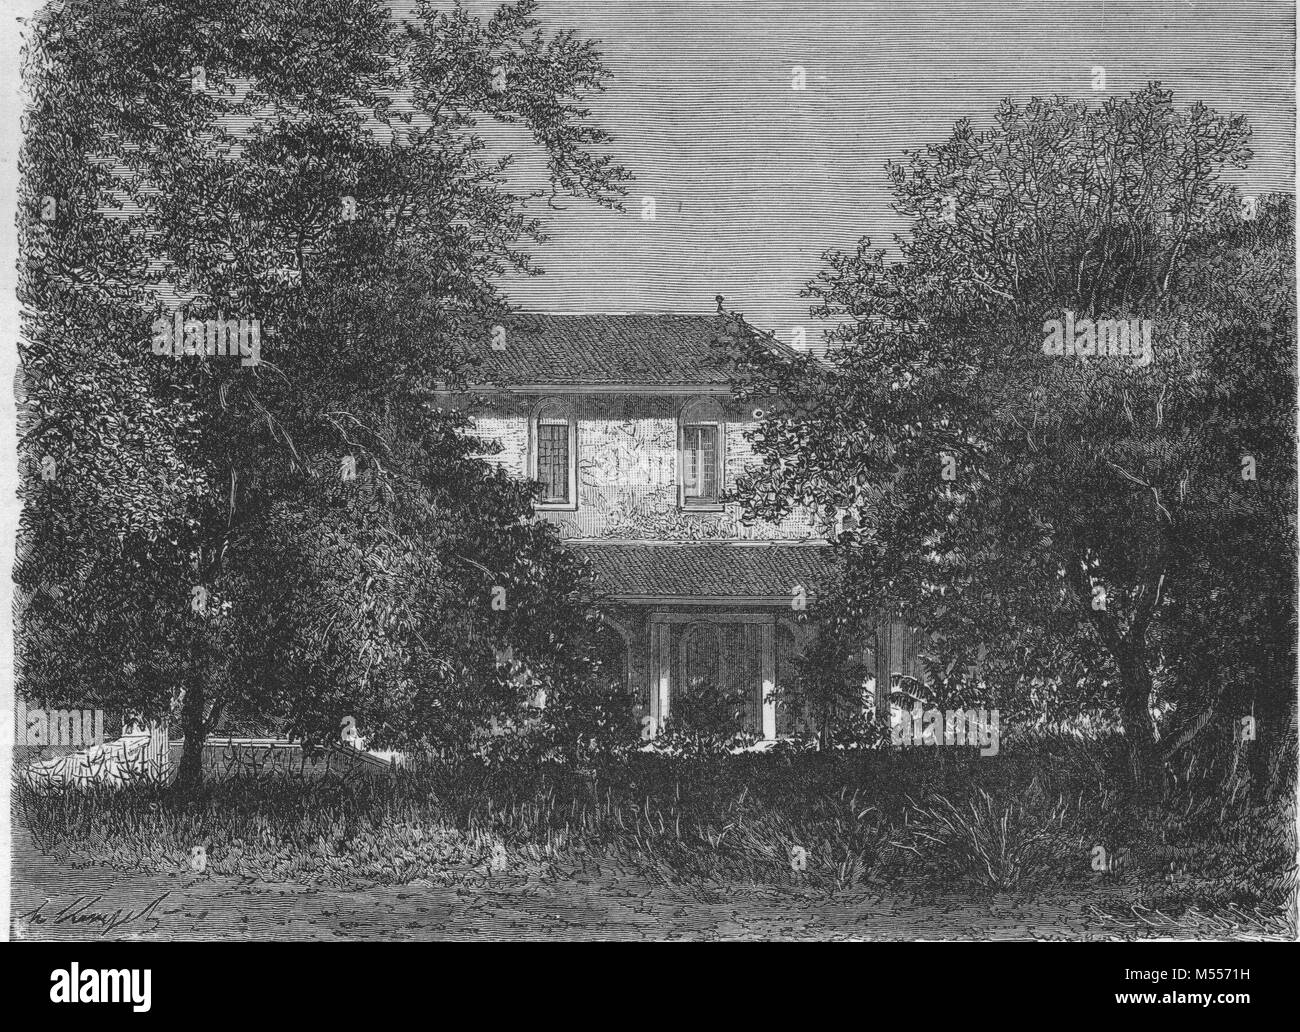 INDIA. The Travellers' Bungalow at Ahmedabad, antique engraving 1878 - Stock Image